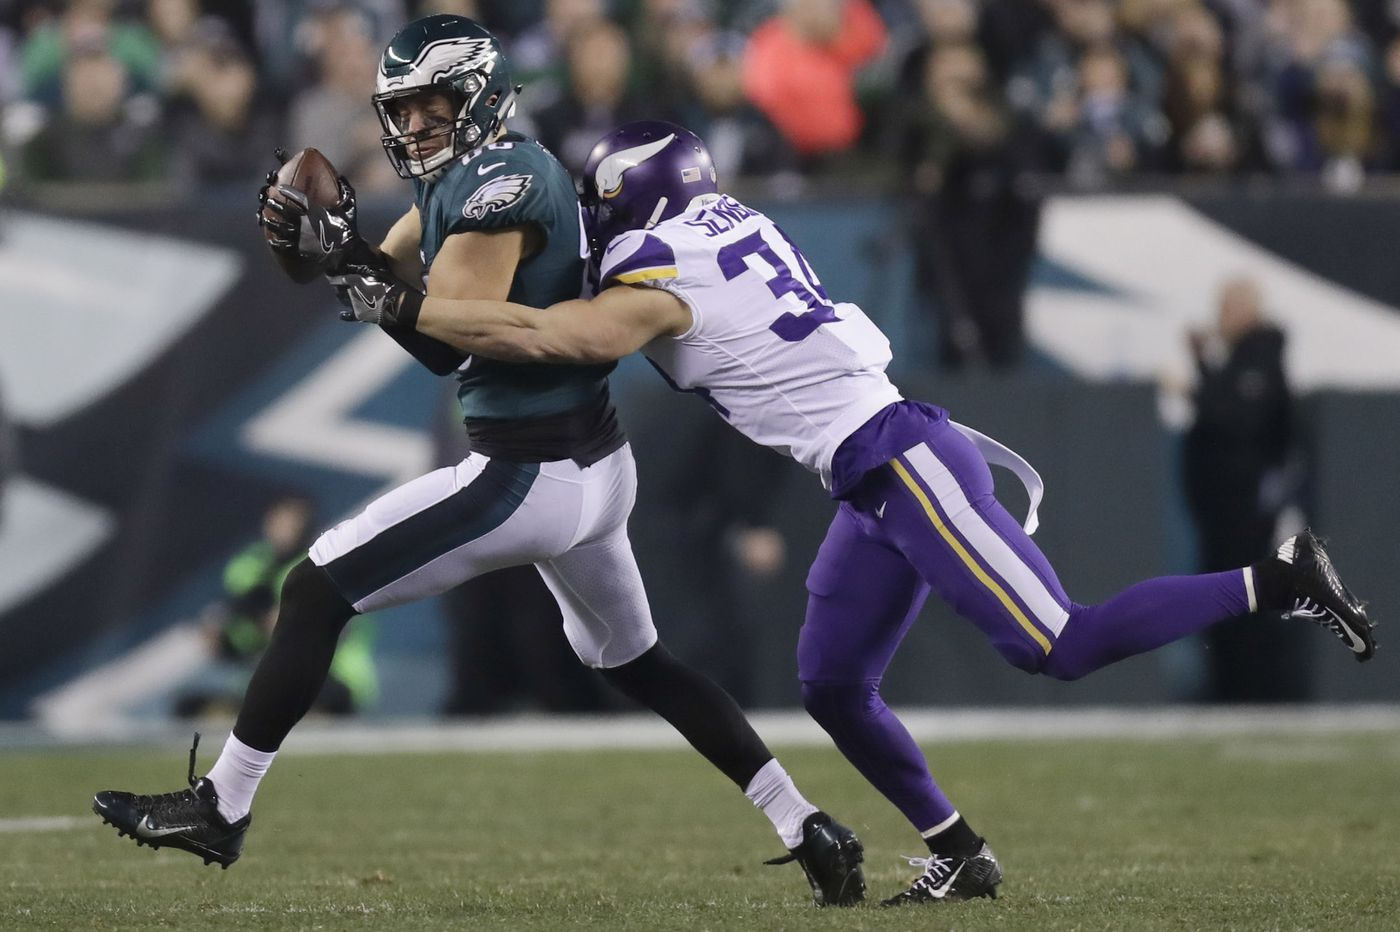 Andrew Sendejo eager to meet Philly fans as an Eagle, after experiencing them as a Viking